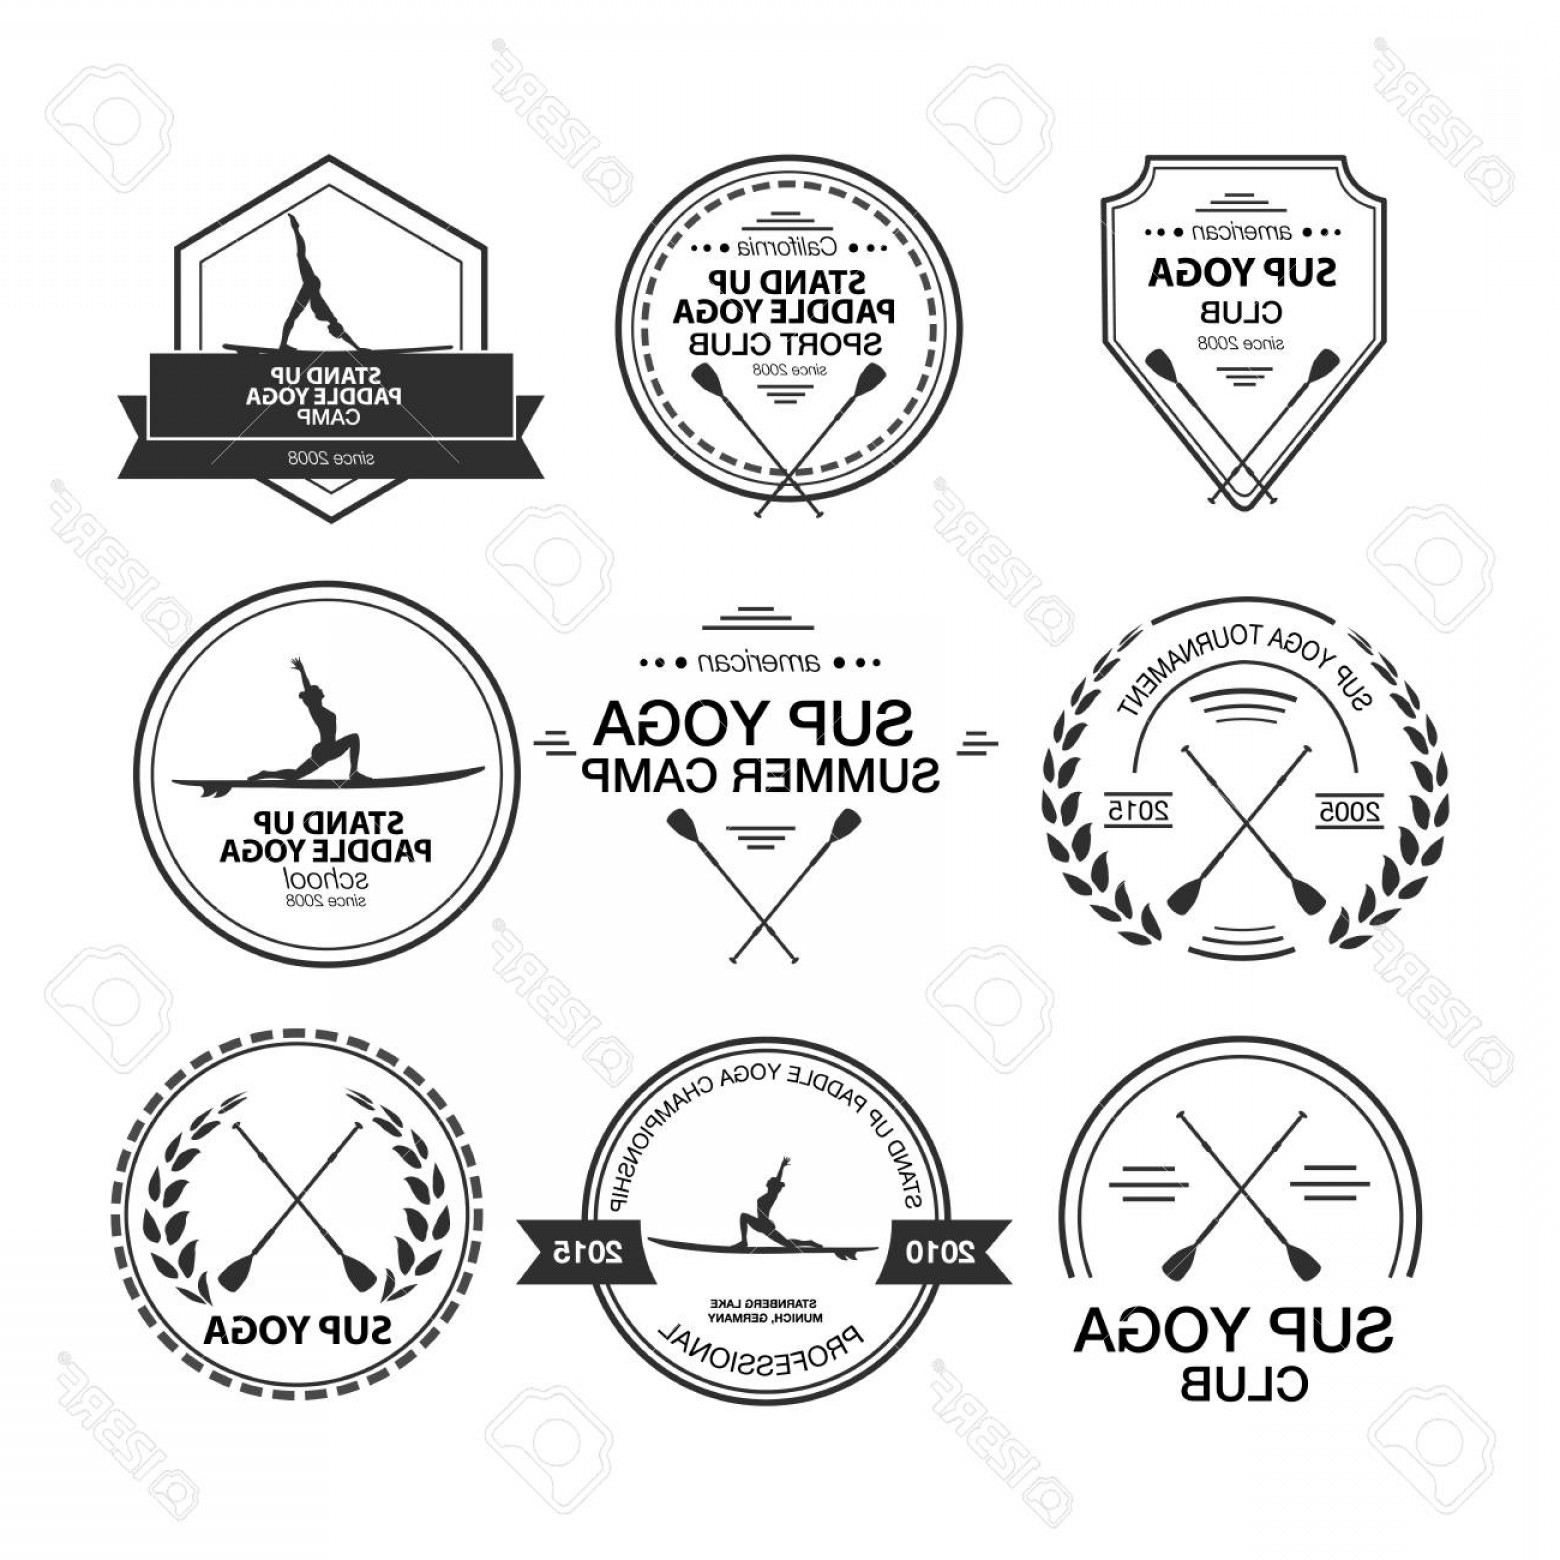 Paddle Vector Art: Photostock Vector Set Of Different Templates For Stand Up Paddle Yoga Athletic Labels And Badges